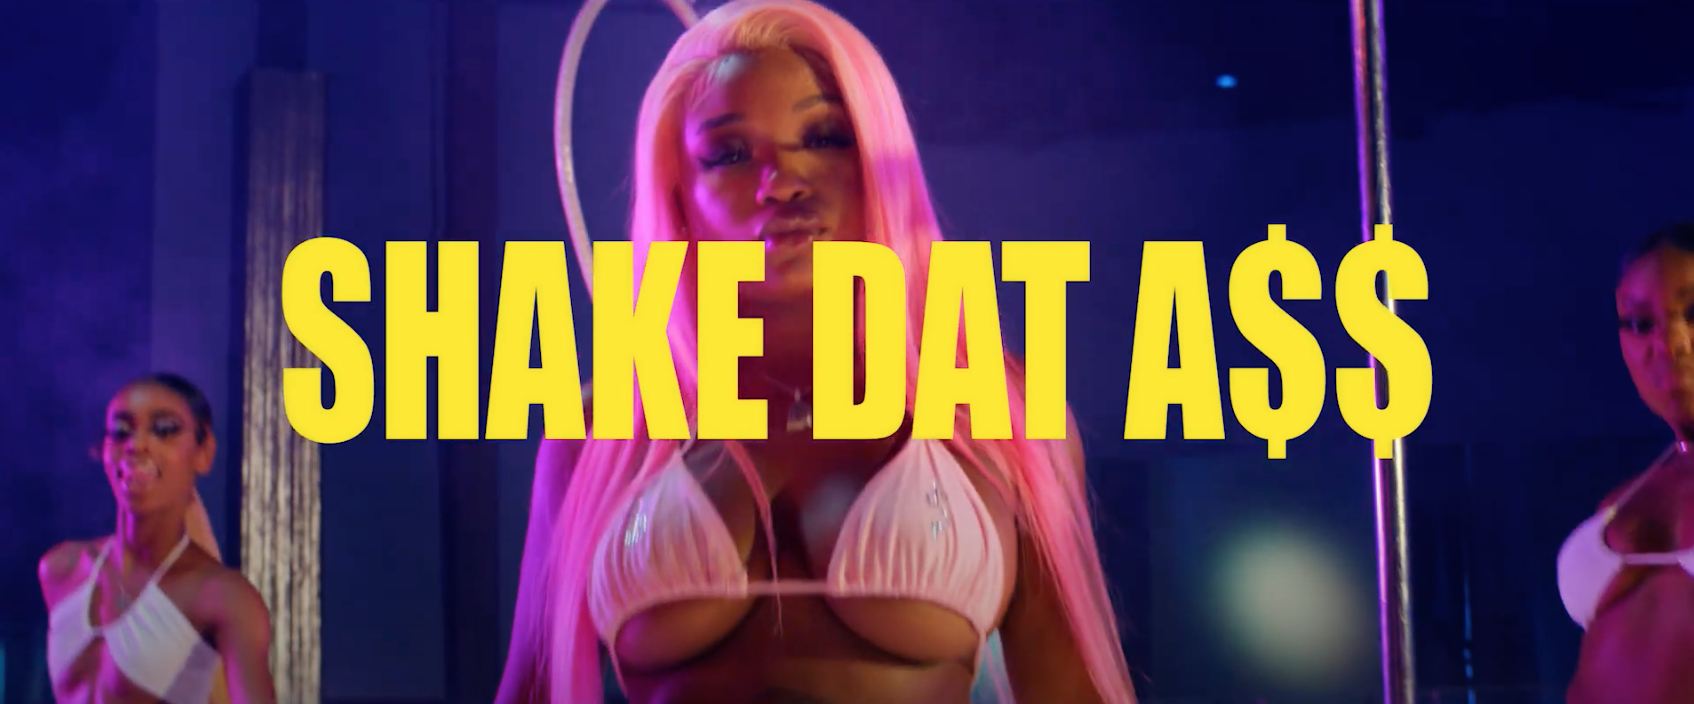 Baha Banks and Chance The Rapper link for the official video to Shake Dat A$$